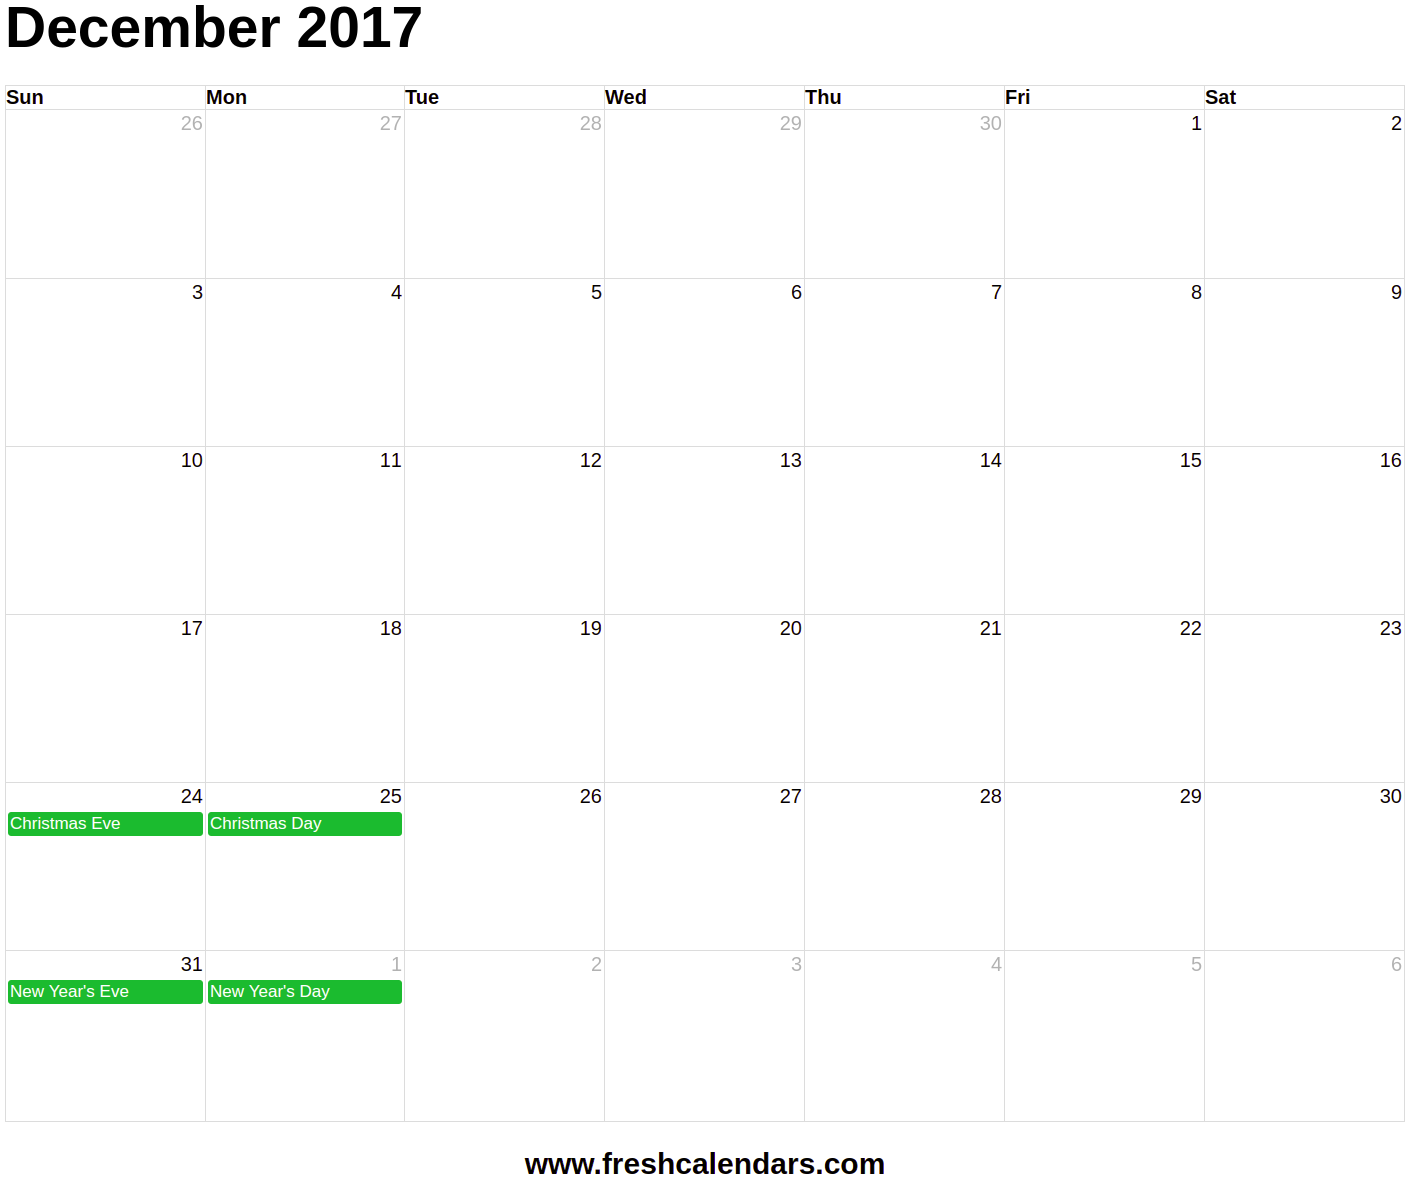 December 2017 Calendar Templates With Holidays